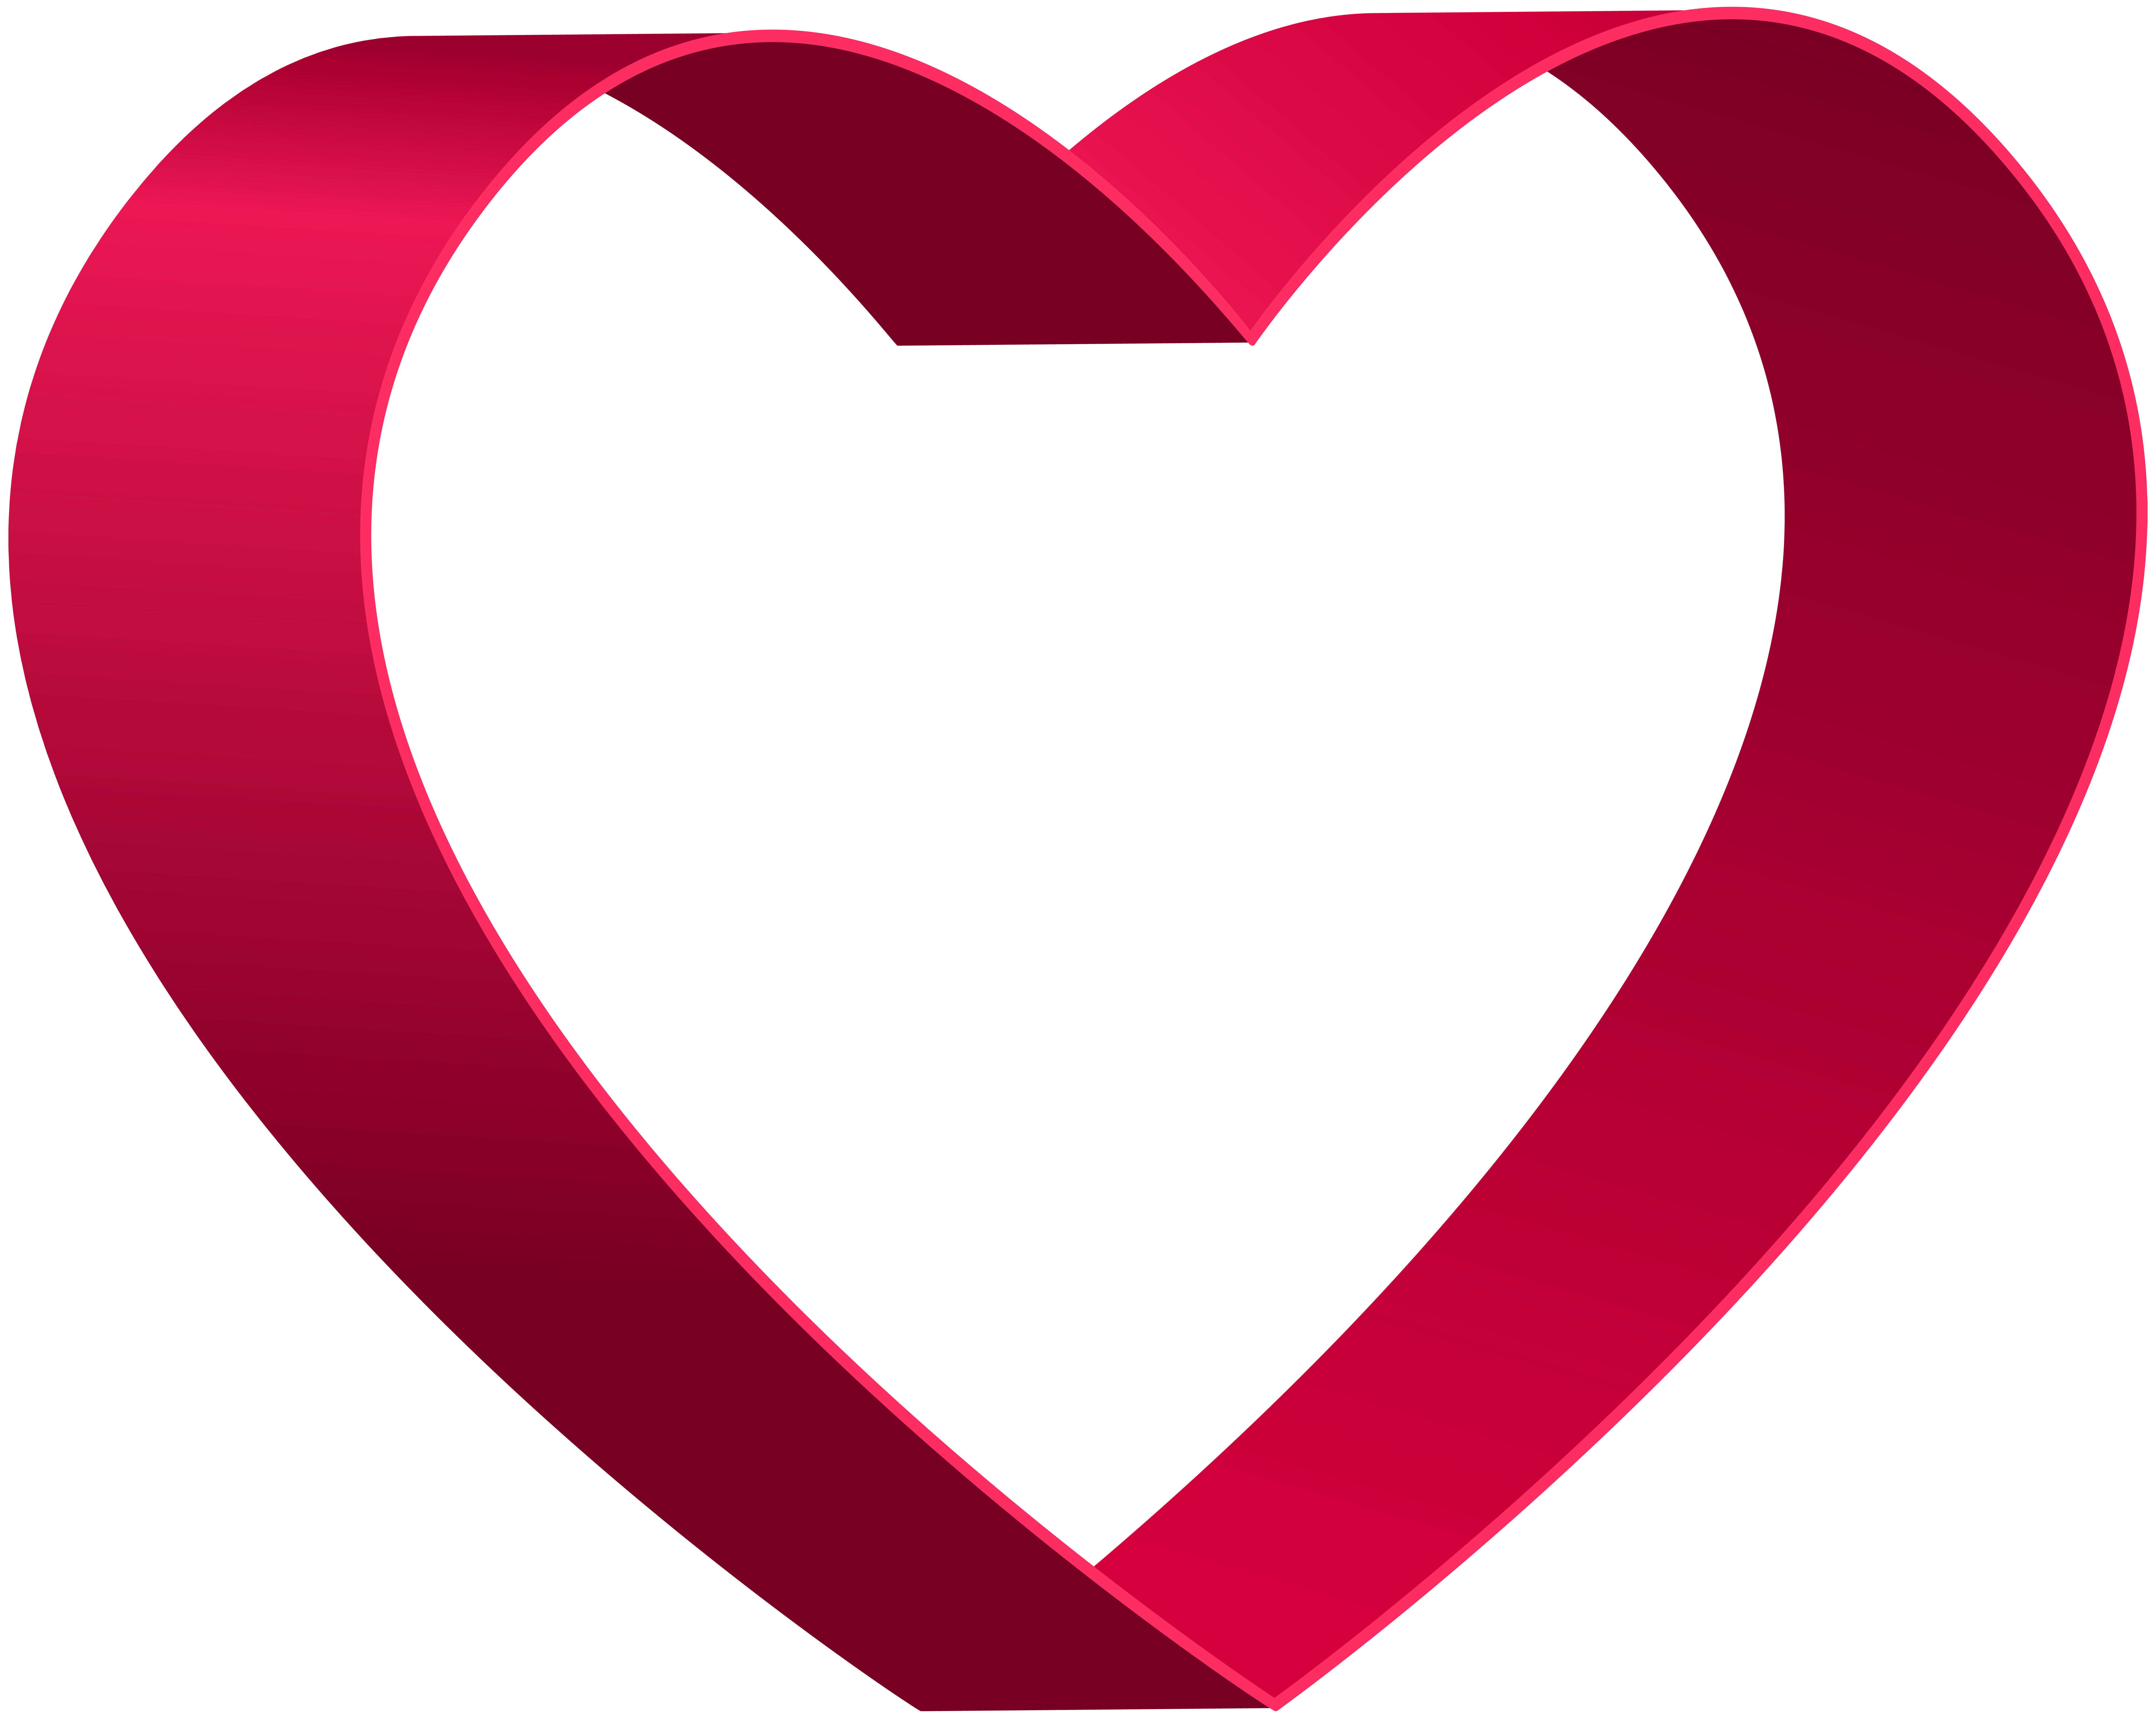 Clip art gallery yopriceville. Heart shape png transparent image freeuse